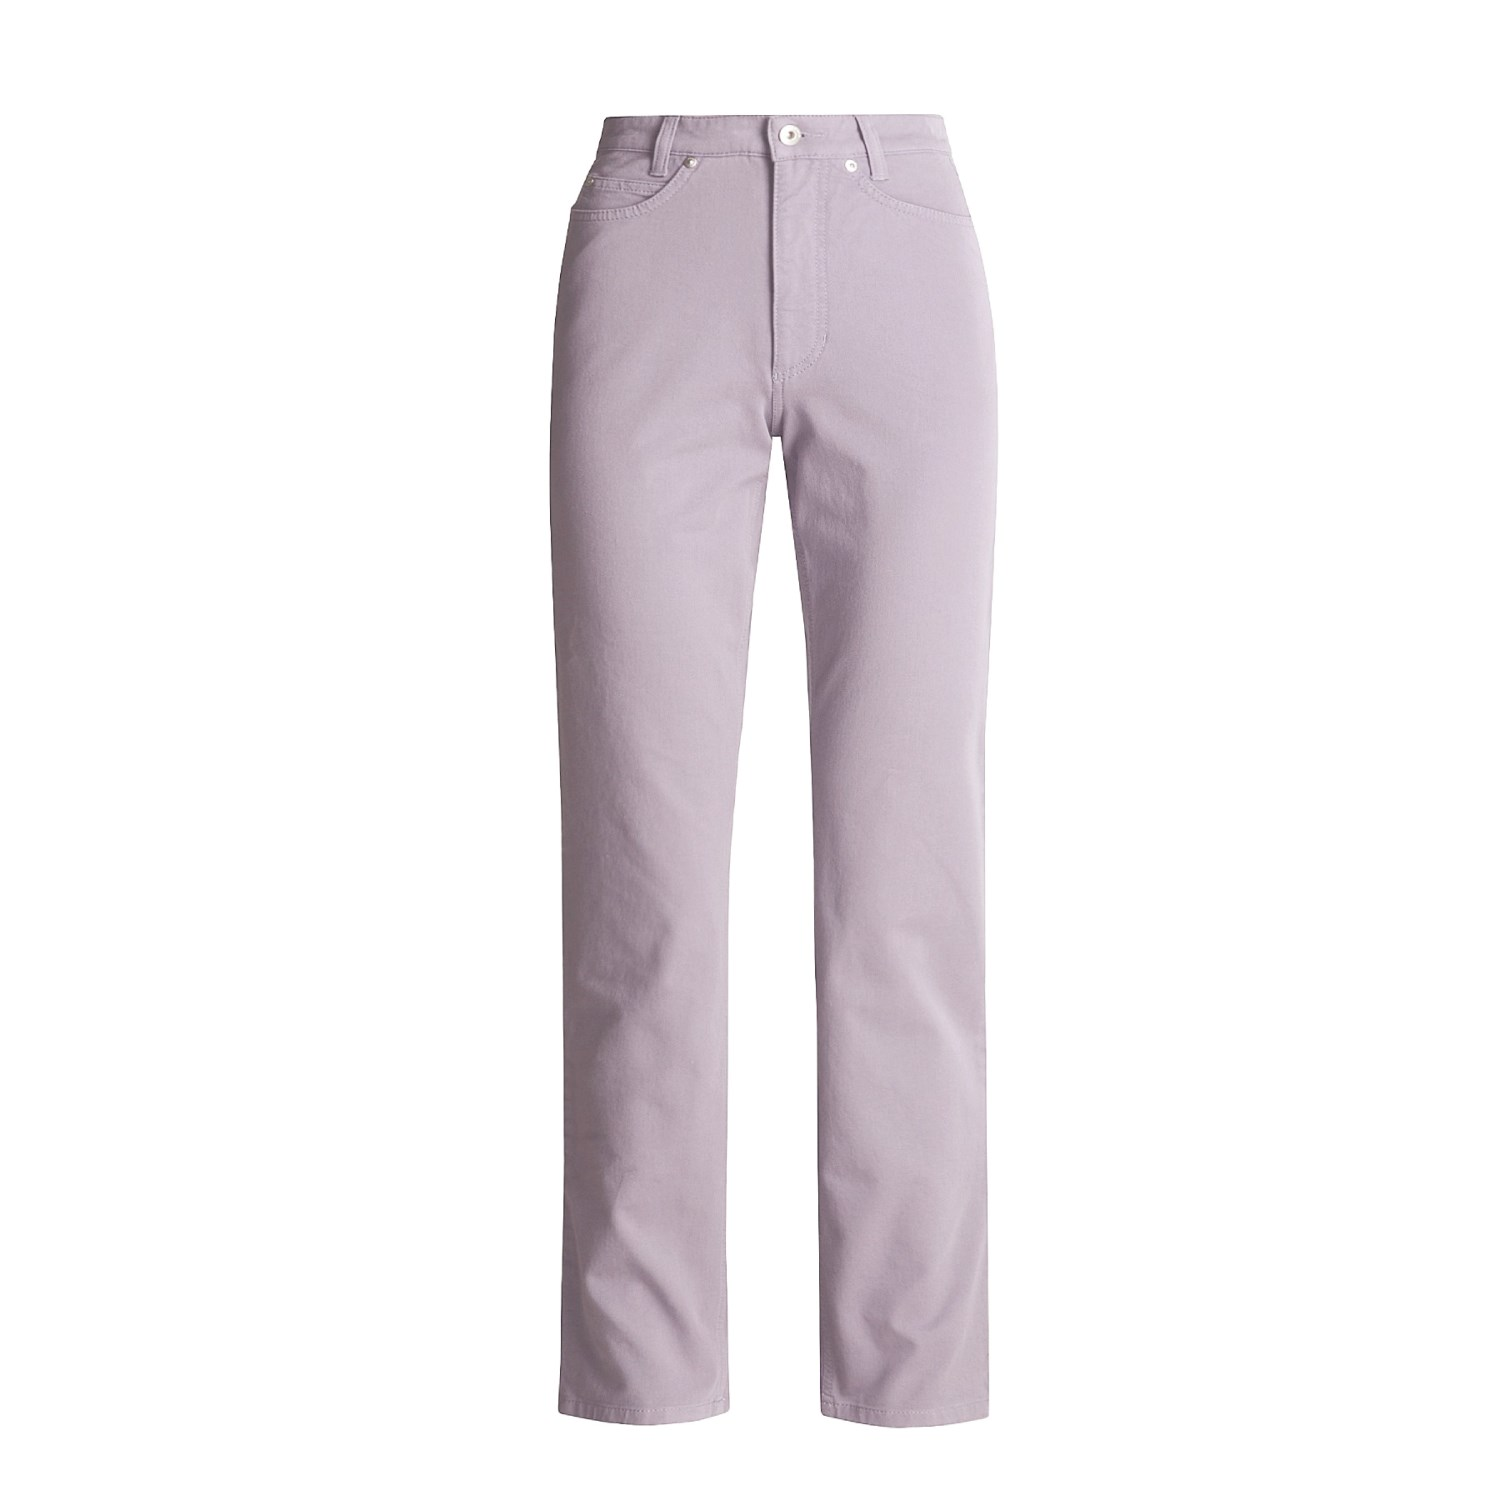 Cool  Dourada Pants  Cotton Twill Straight Leg For Women In Oat Seed